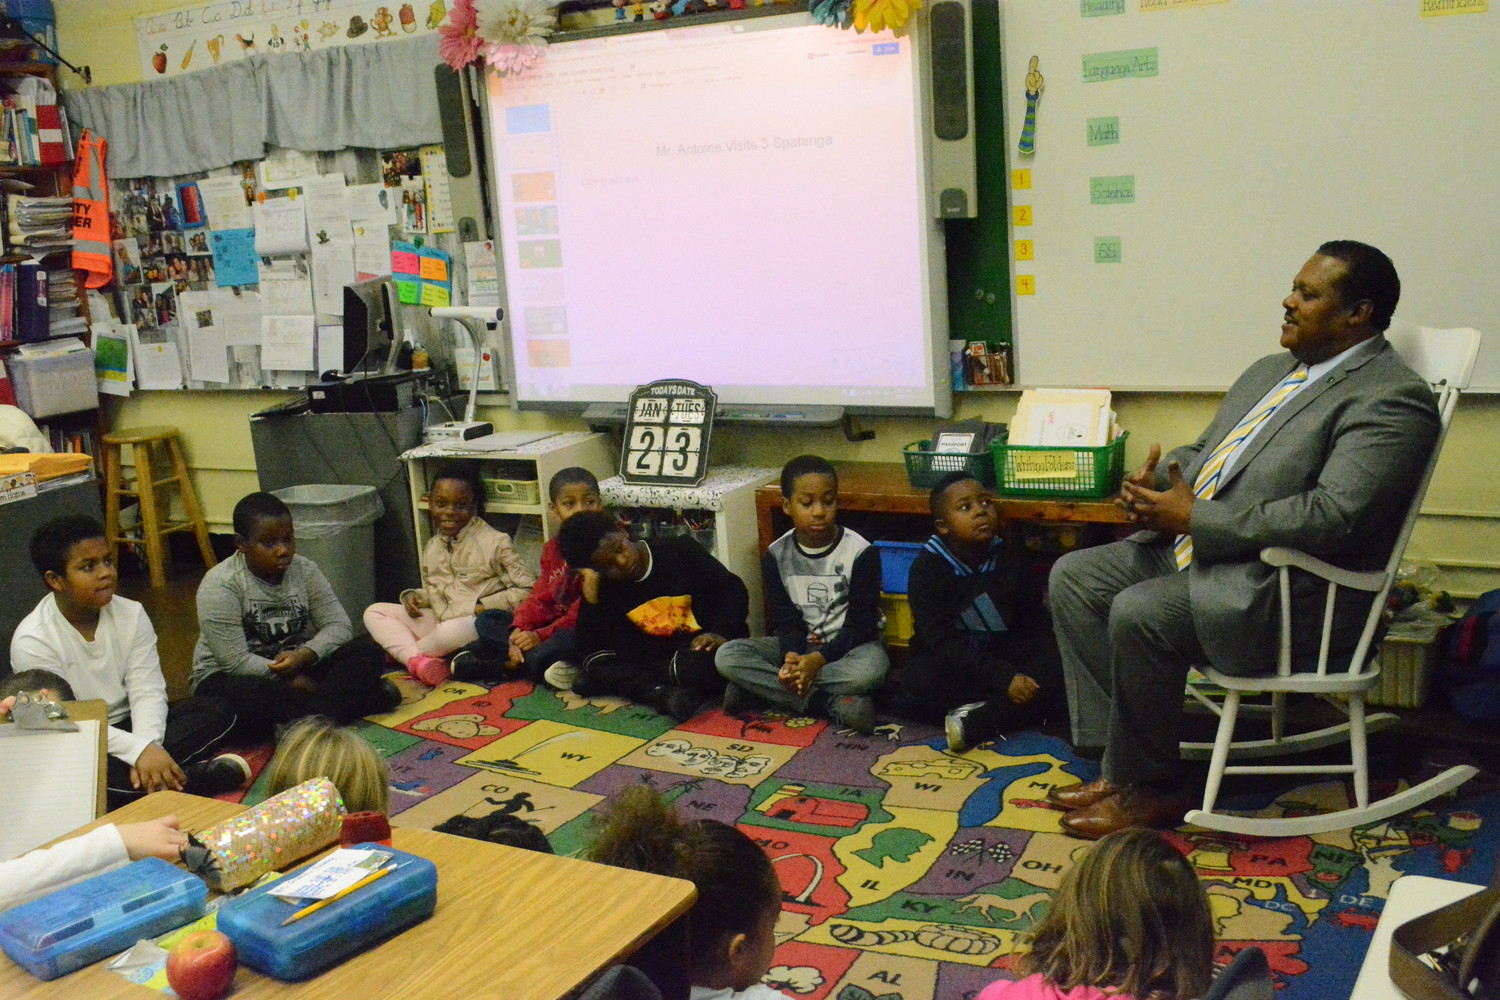 Harry Antoine retold stories of his former job as Dignitary Protection Unit of the NYPD, to a class of fourth grade Plaza Elementary students.